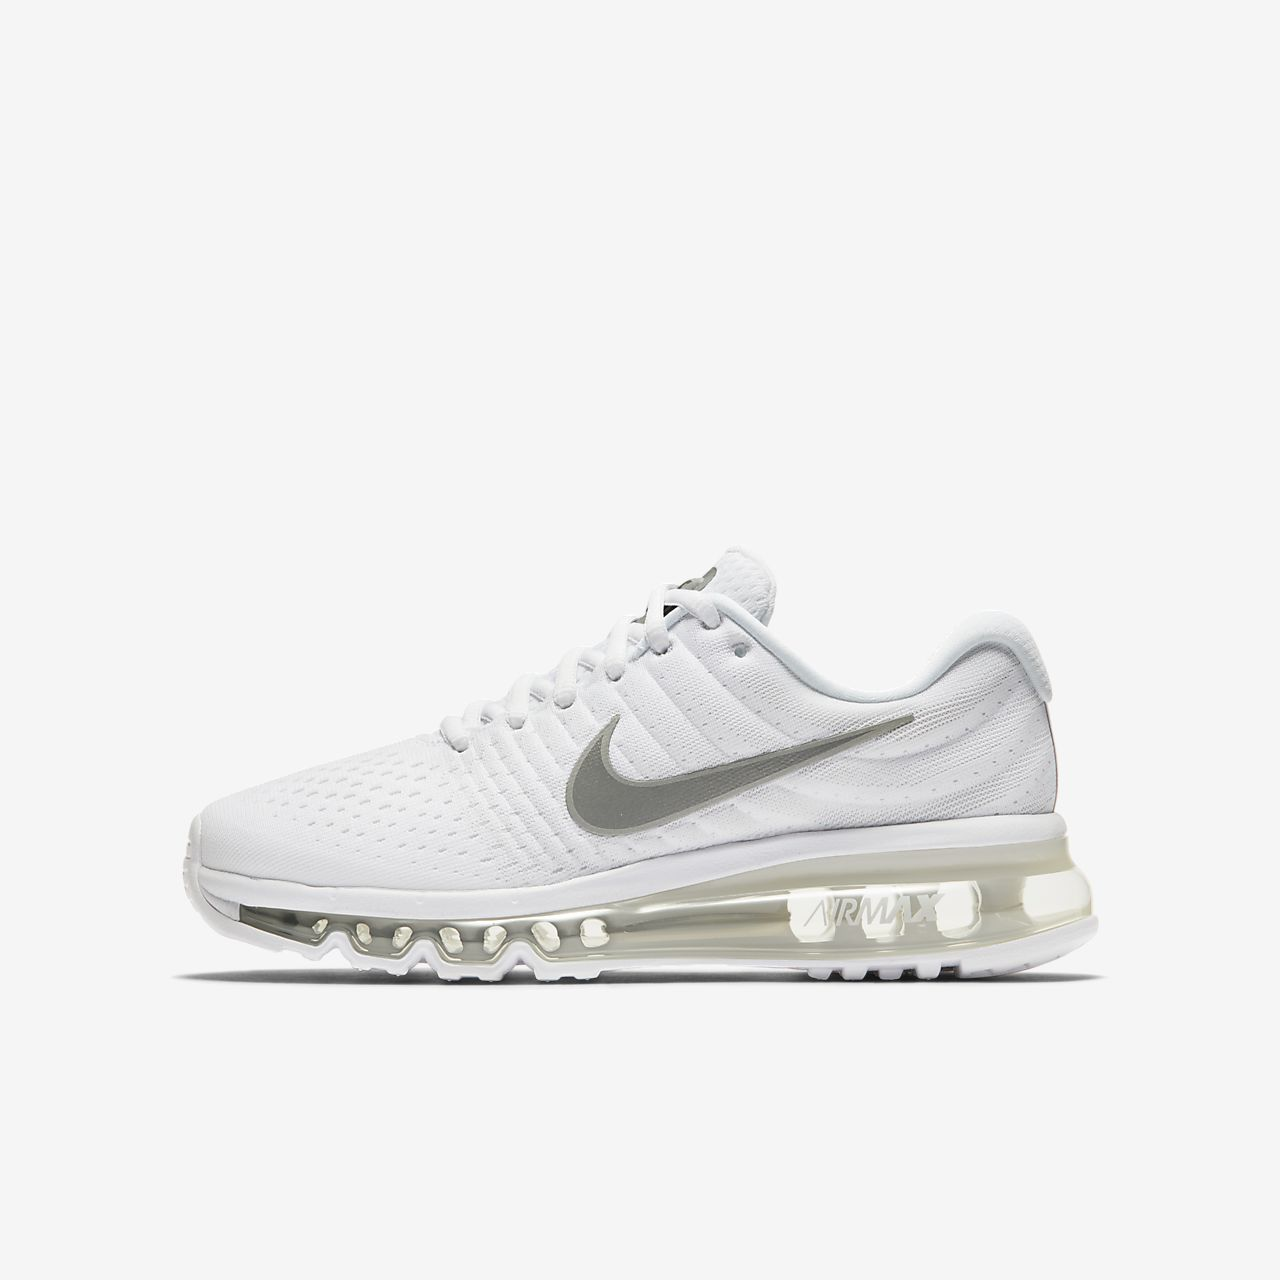 86f096fbb31 Nike Air Max 2017 Older Kids' Shoe. Nike.com AU